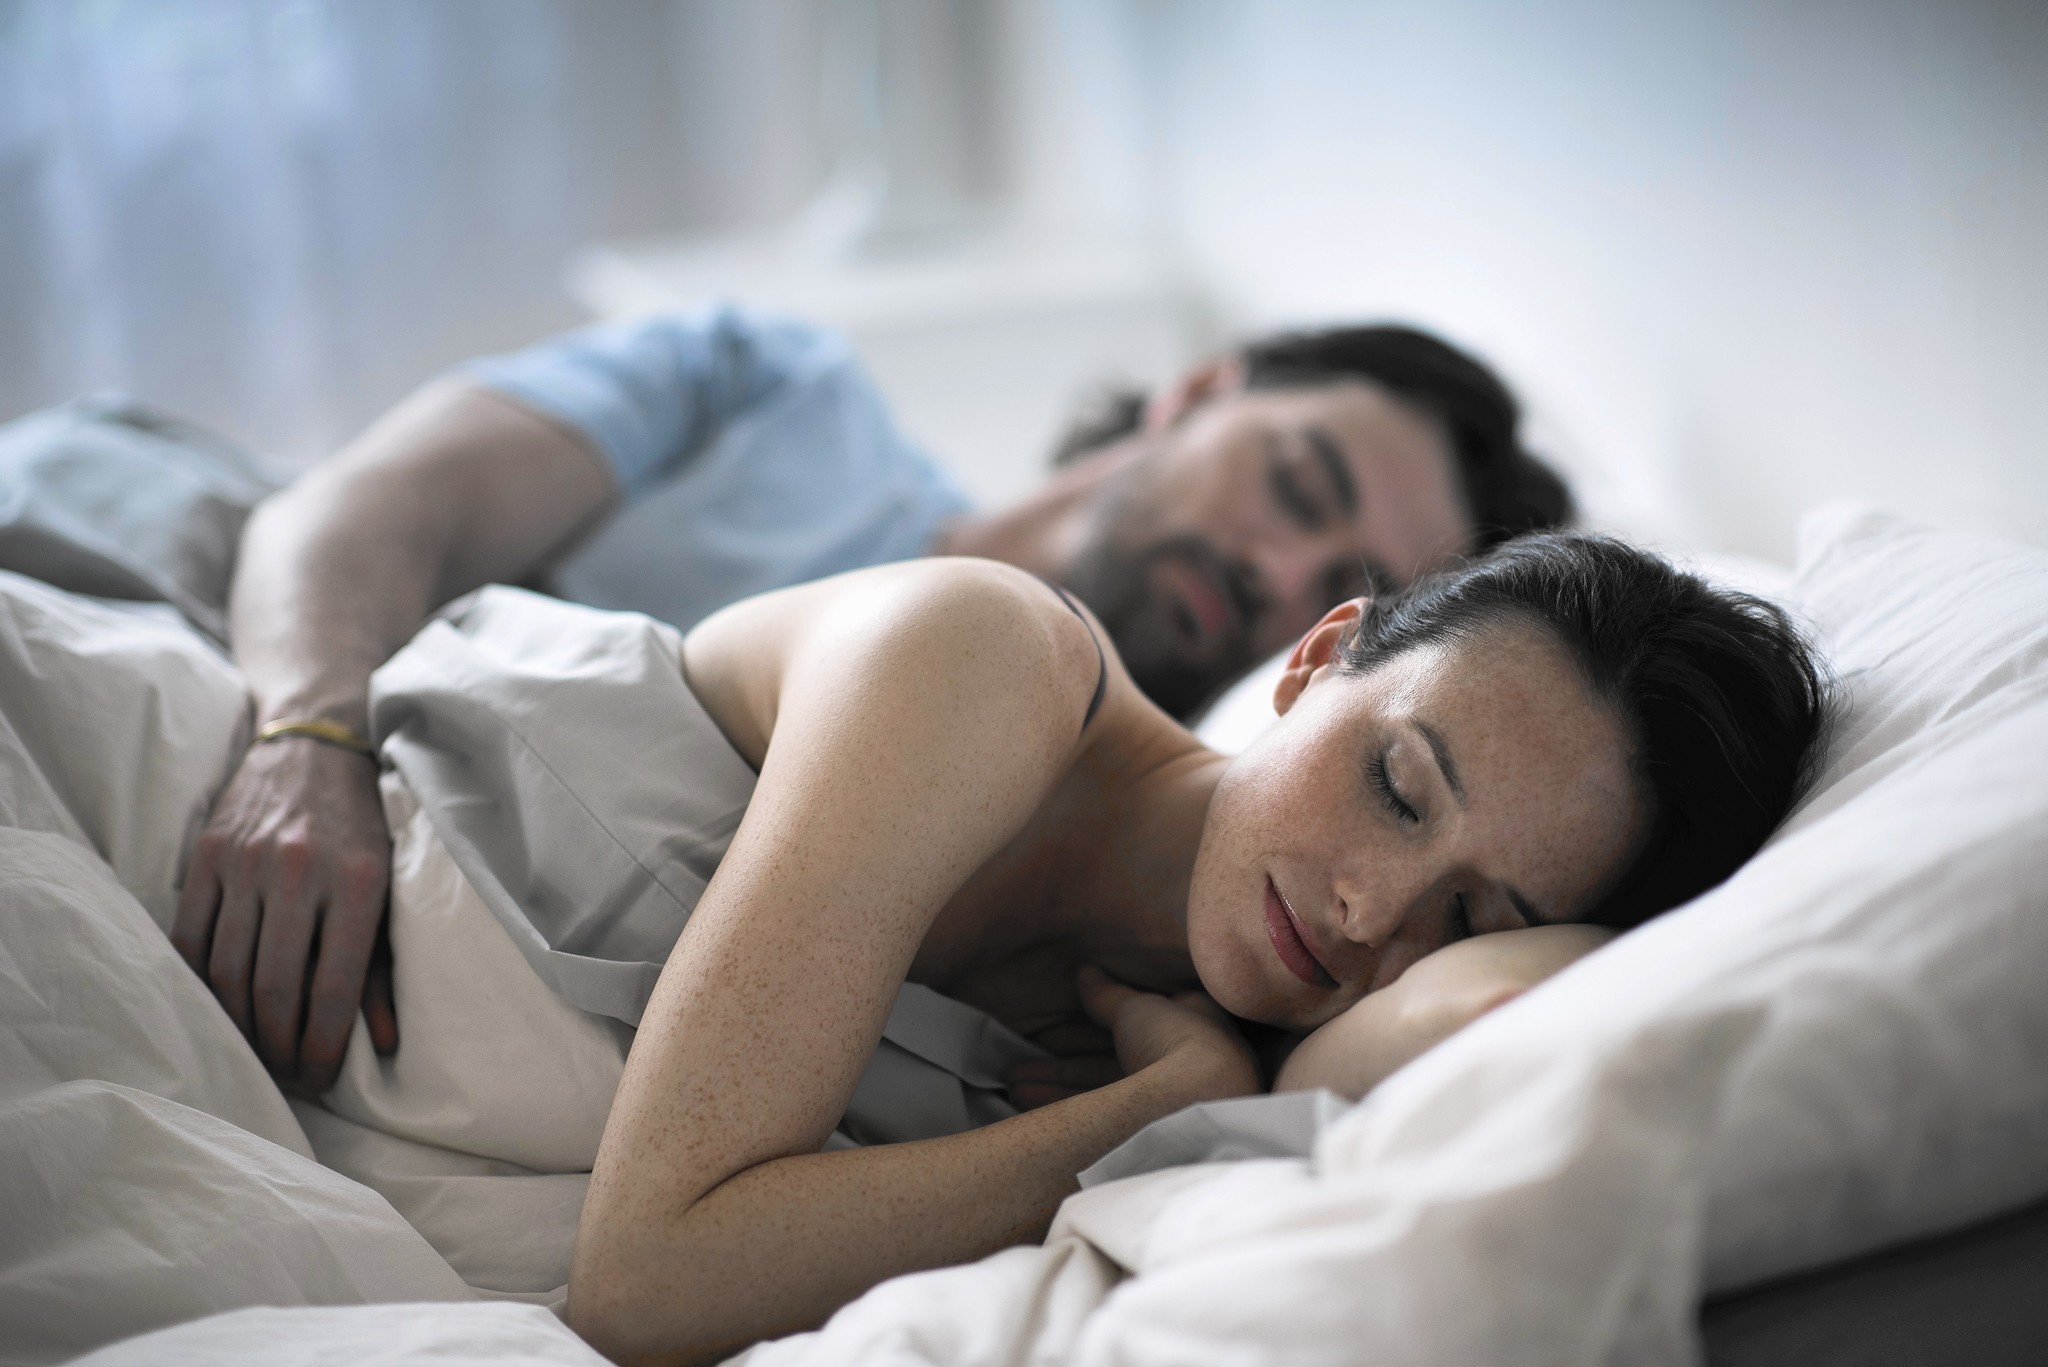 having sex boosts your work performance the next day study shows